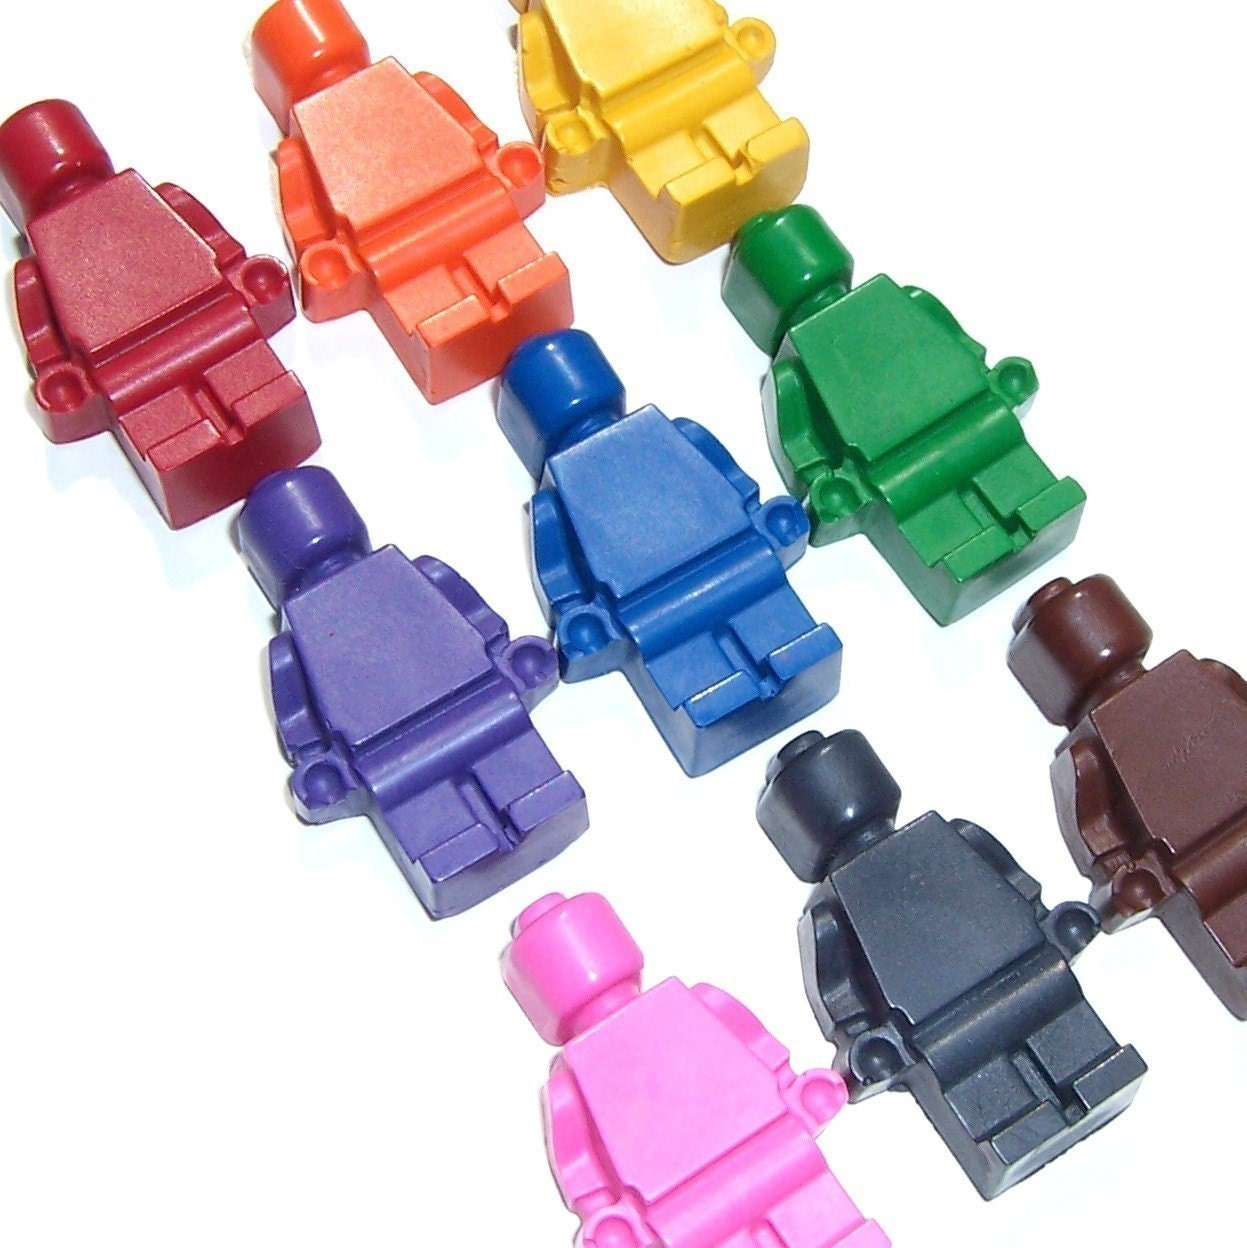 Mini Men Crayons - Lil Doodlers (tm) - Set of 9